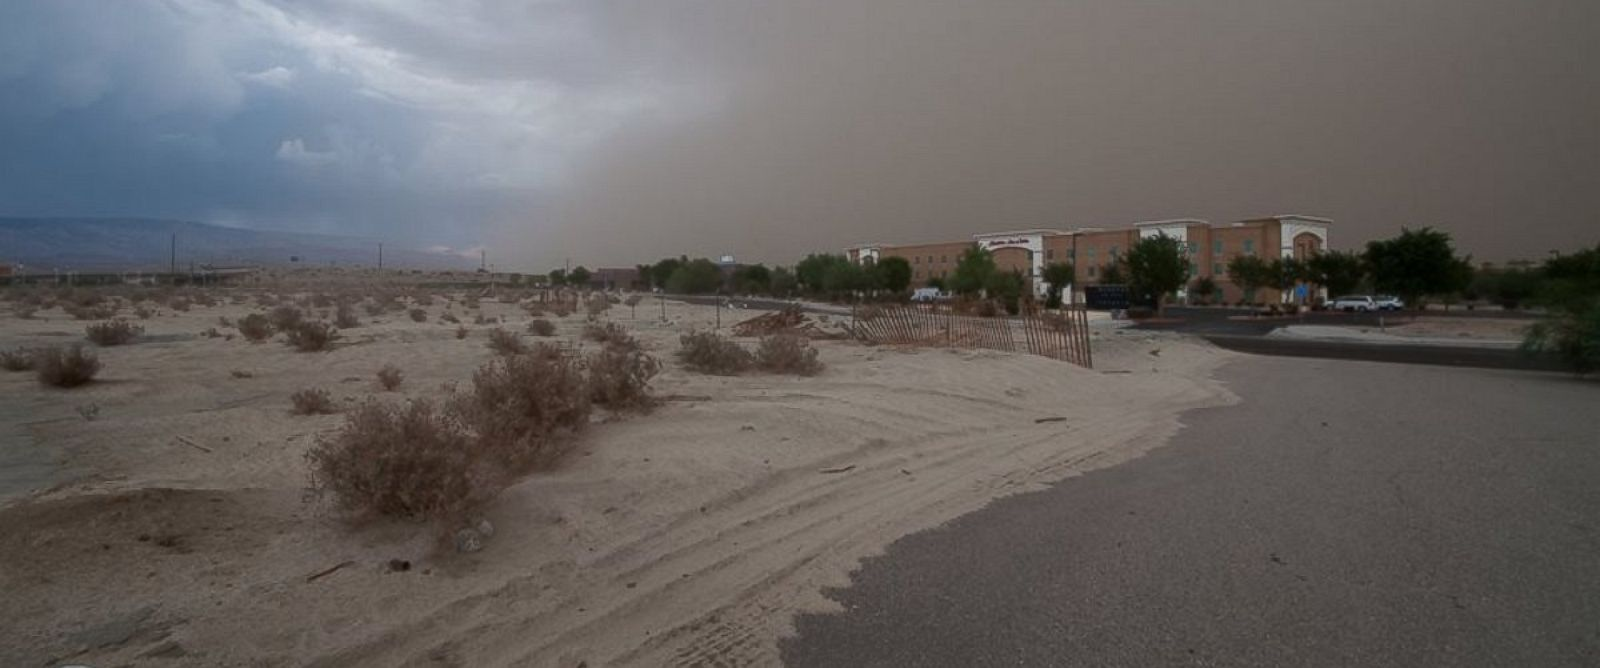 PHOTO: A haboob storm blasted dust and sand across the skies in southern California, Aug. 21, 2014.